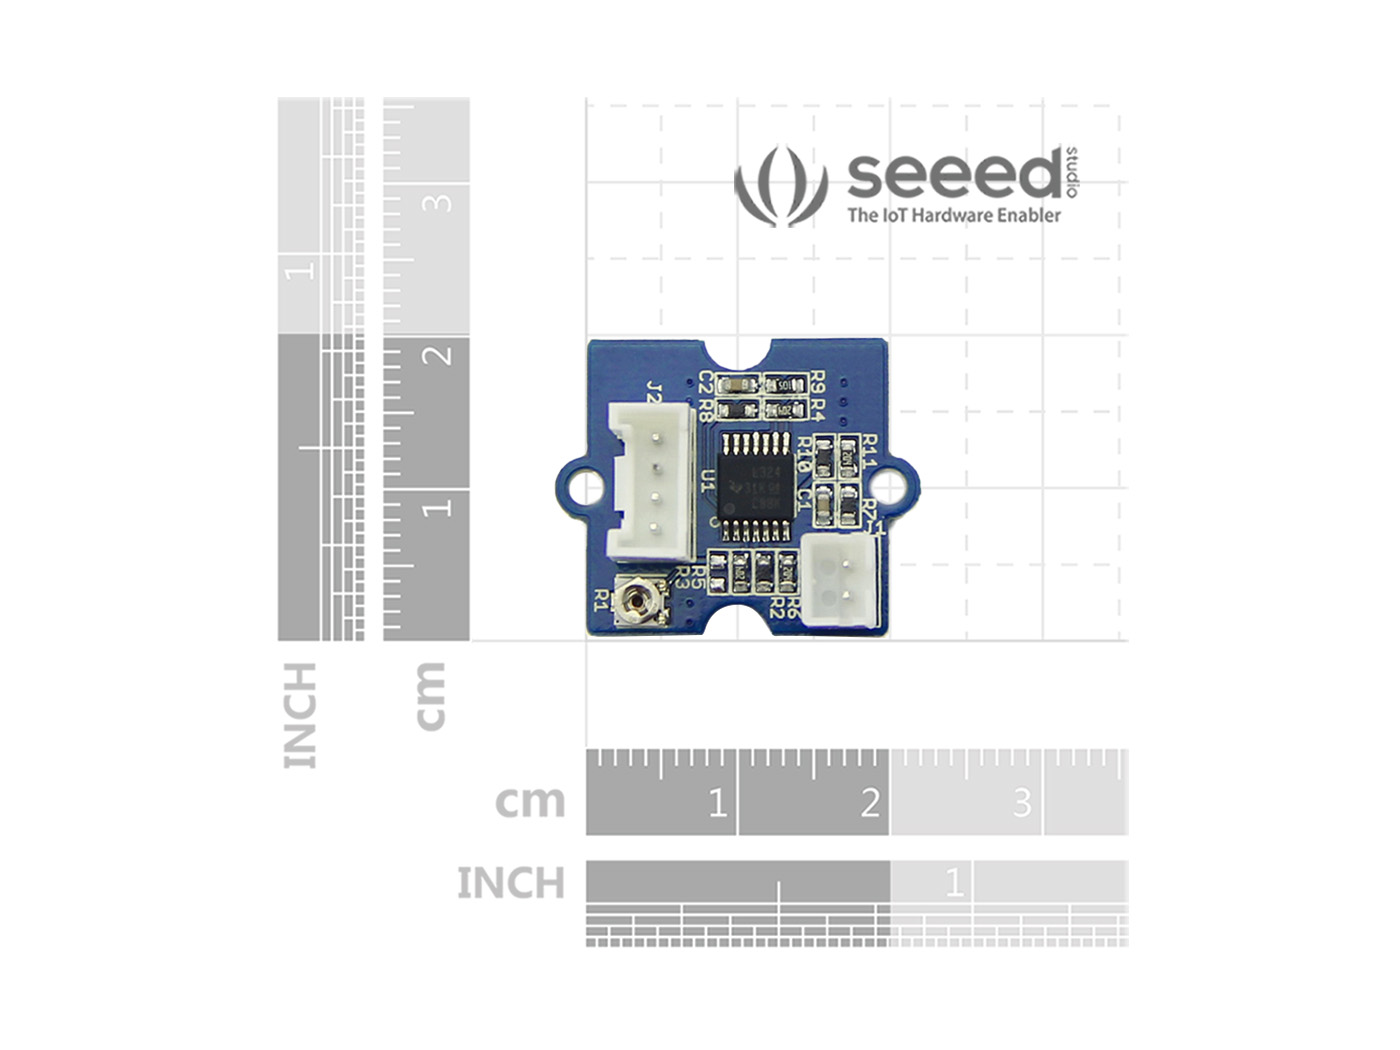 Grove Gsr Sensor Seeed Studio Pin Atx Motherboard Diagram On Pinterest